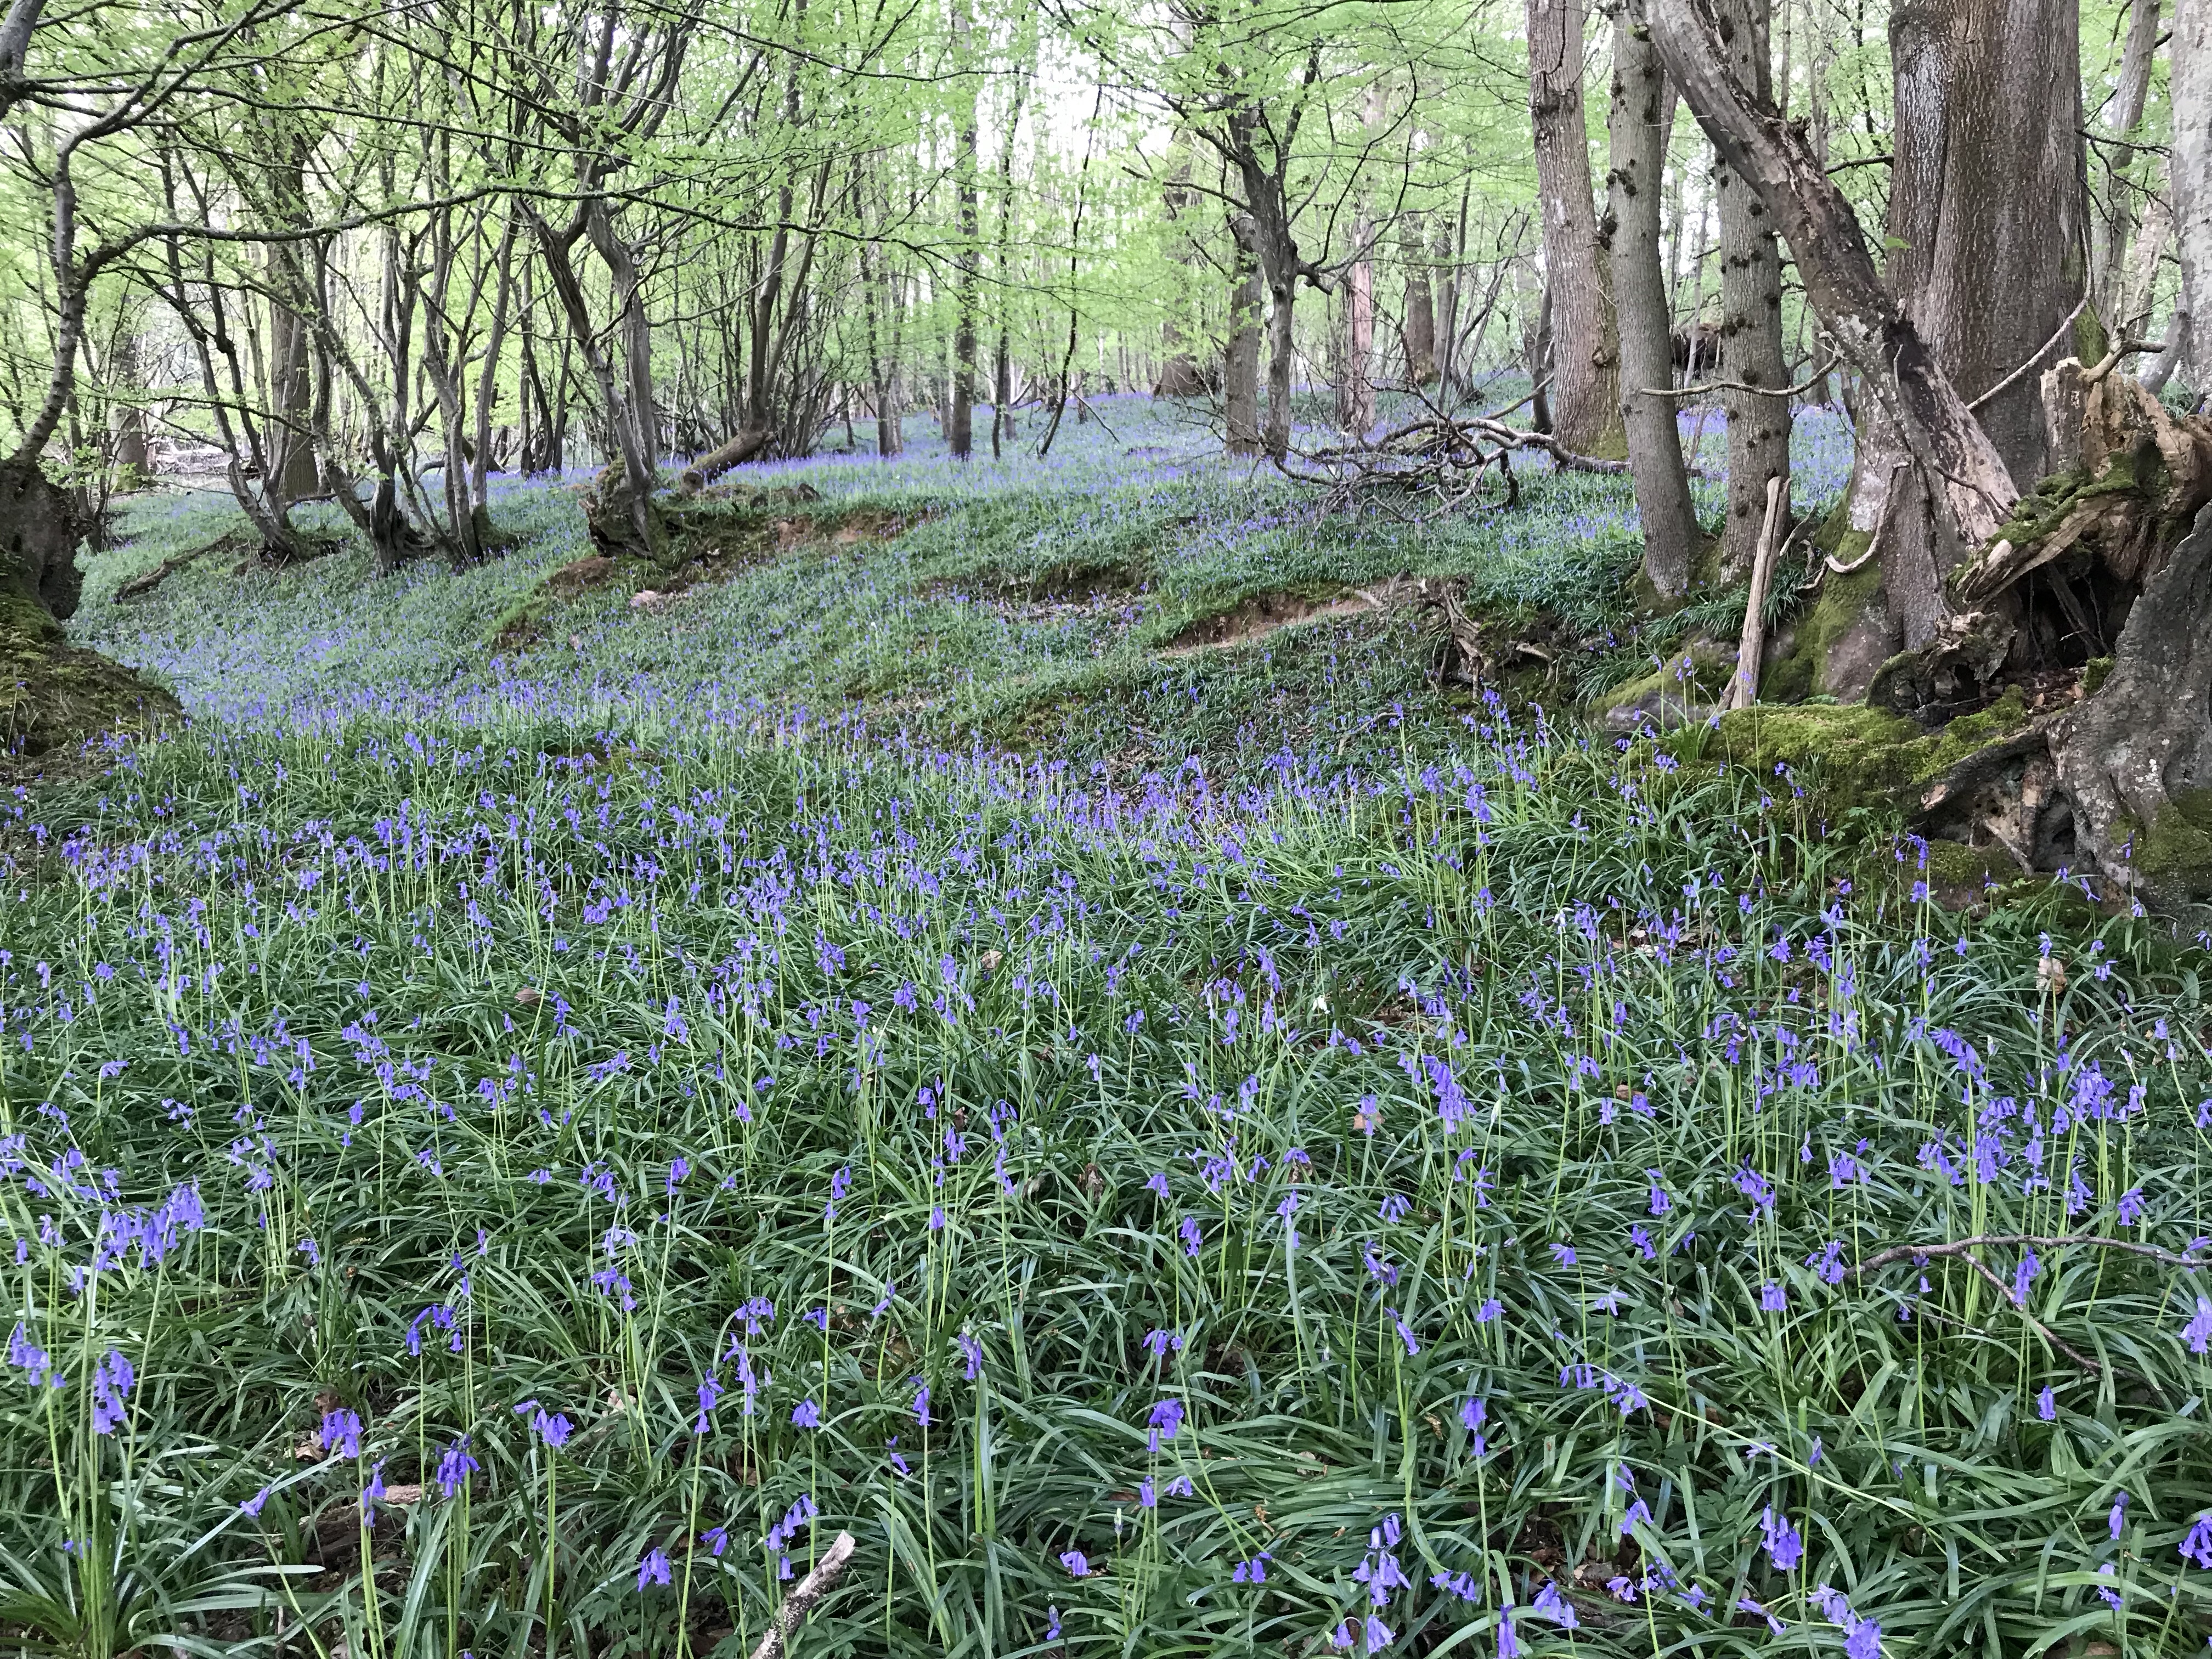 Brightly coloured bluebells (wild flowers) in the woods in mayfield